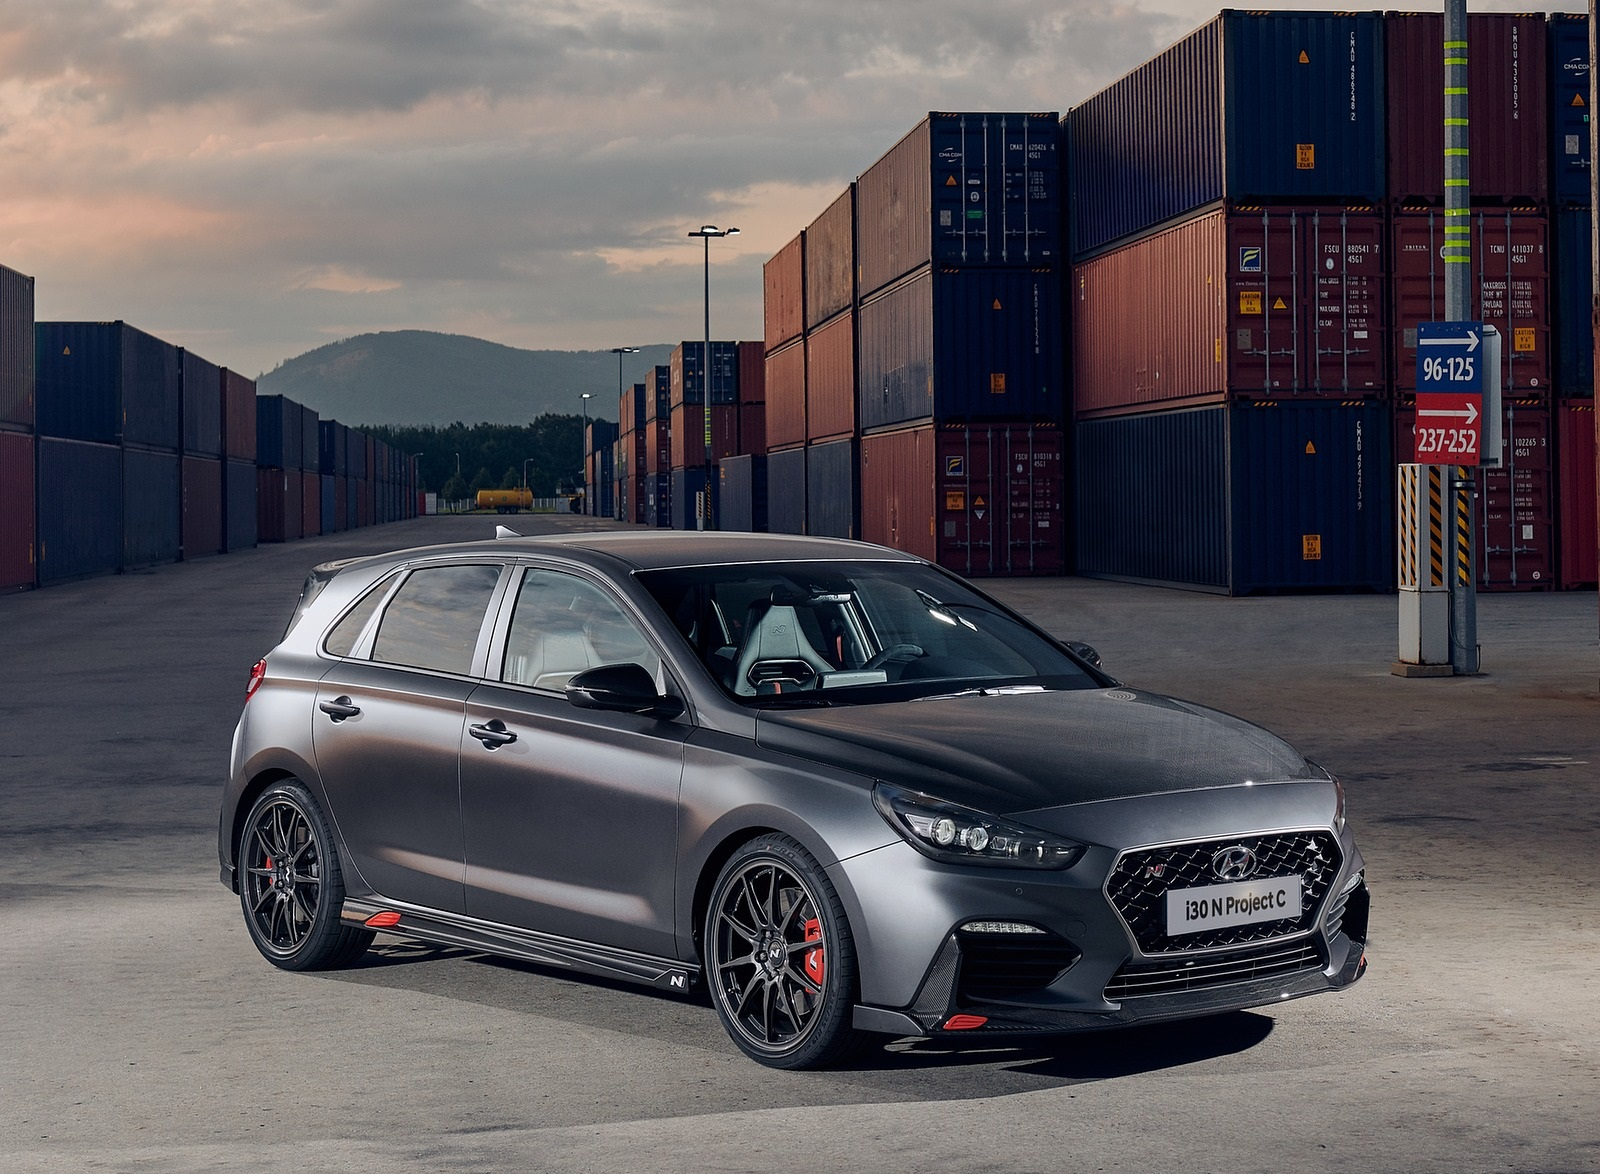 2020 Hyundai i30 N Project C Front Three-Quarter Wallpapers (10)